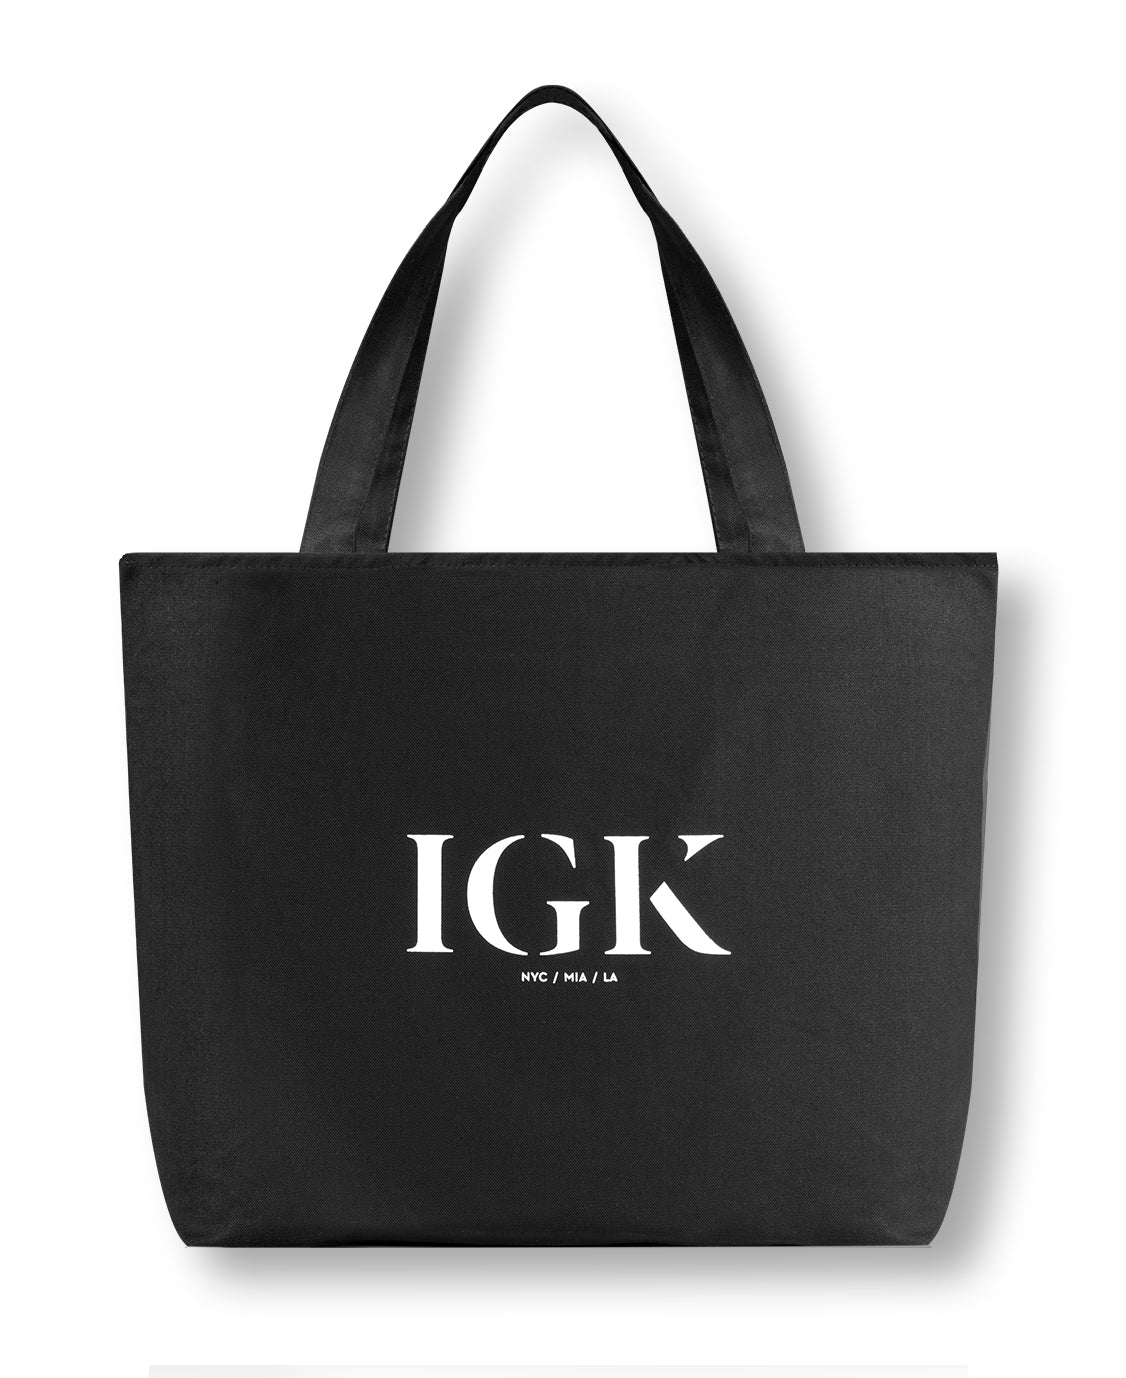 IGK ZIPPERED TOTE